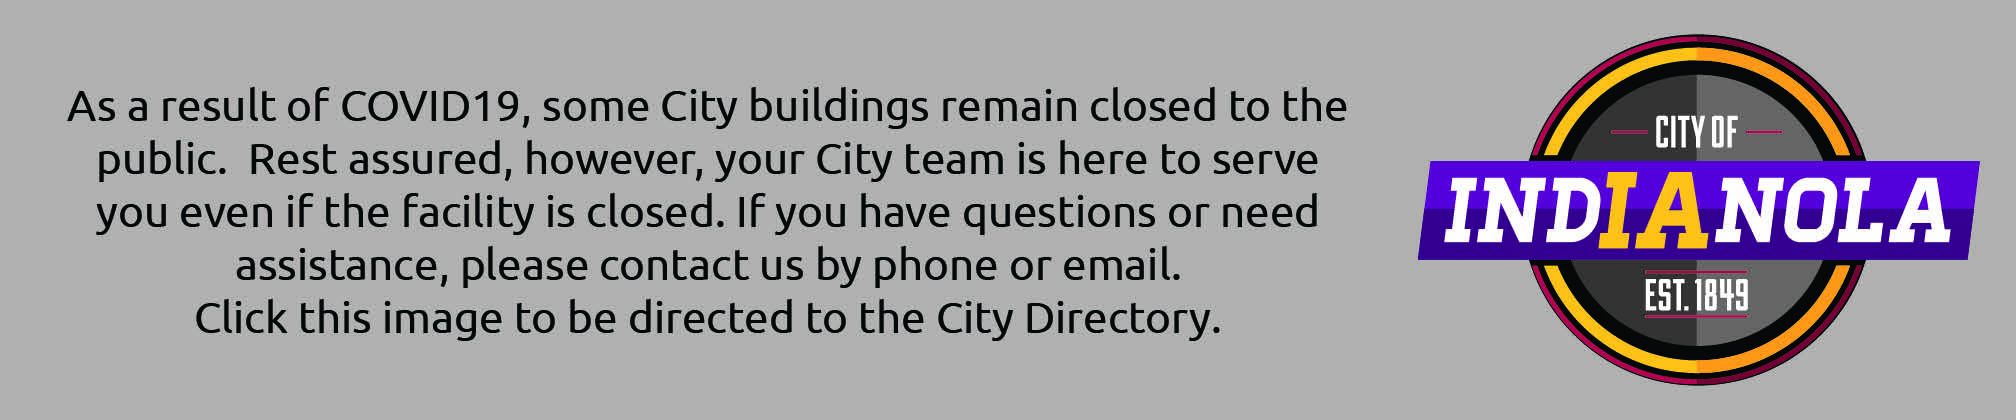 COVID Buildings Closed